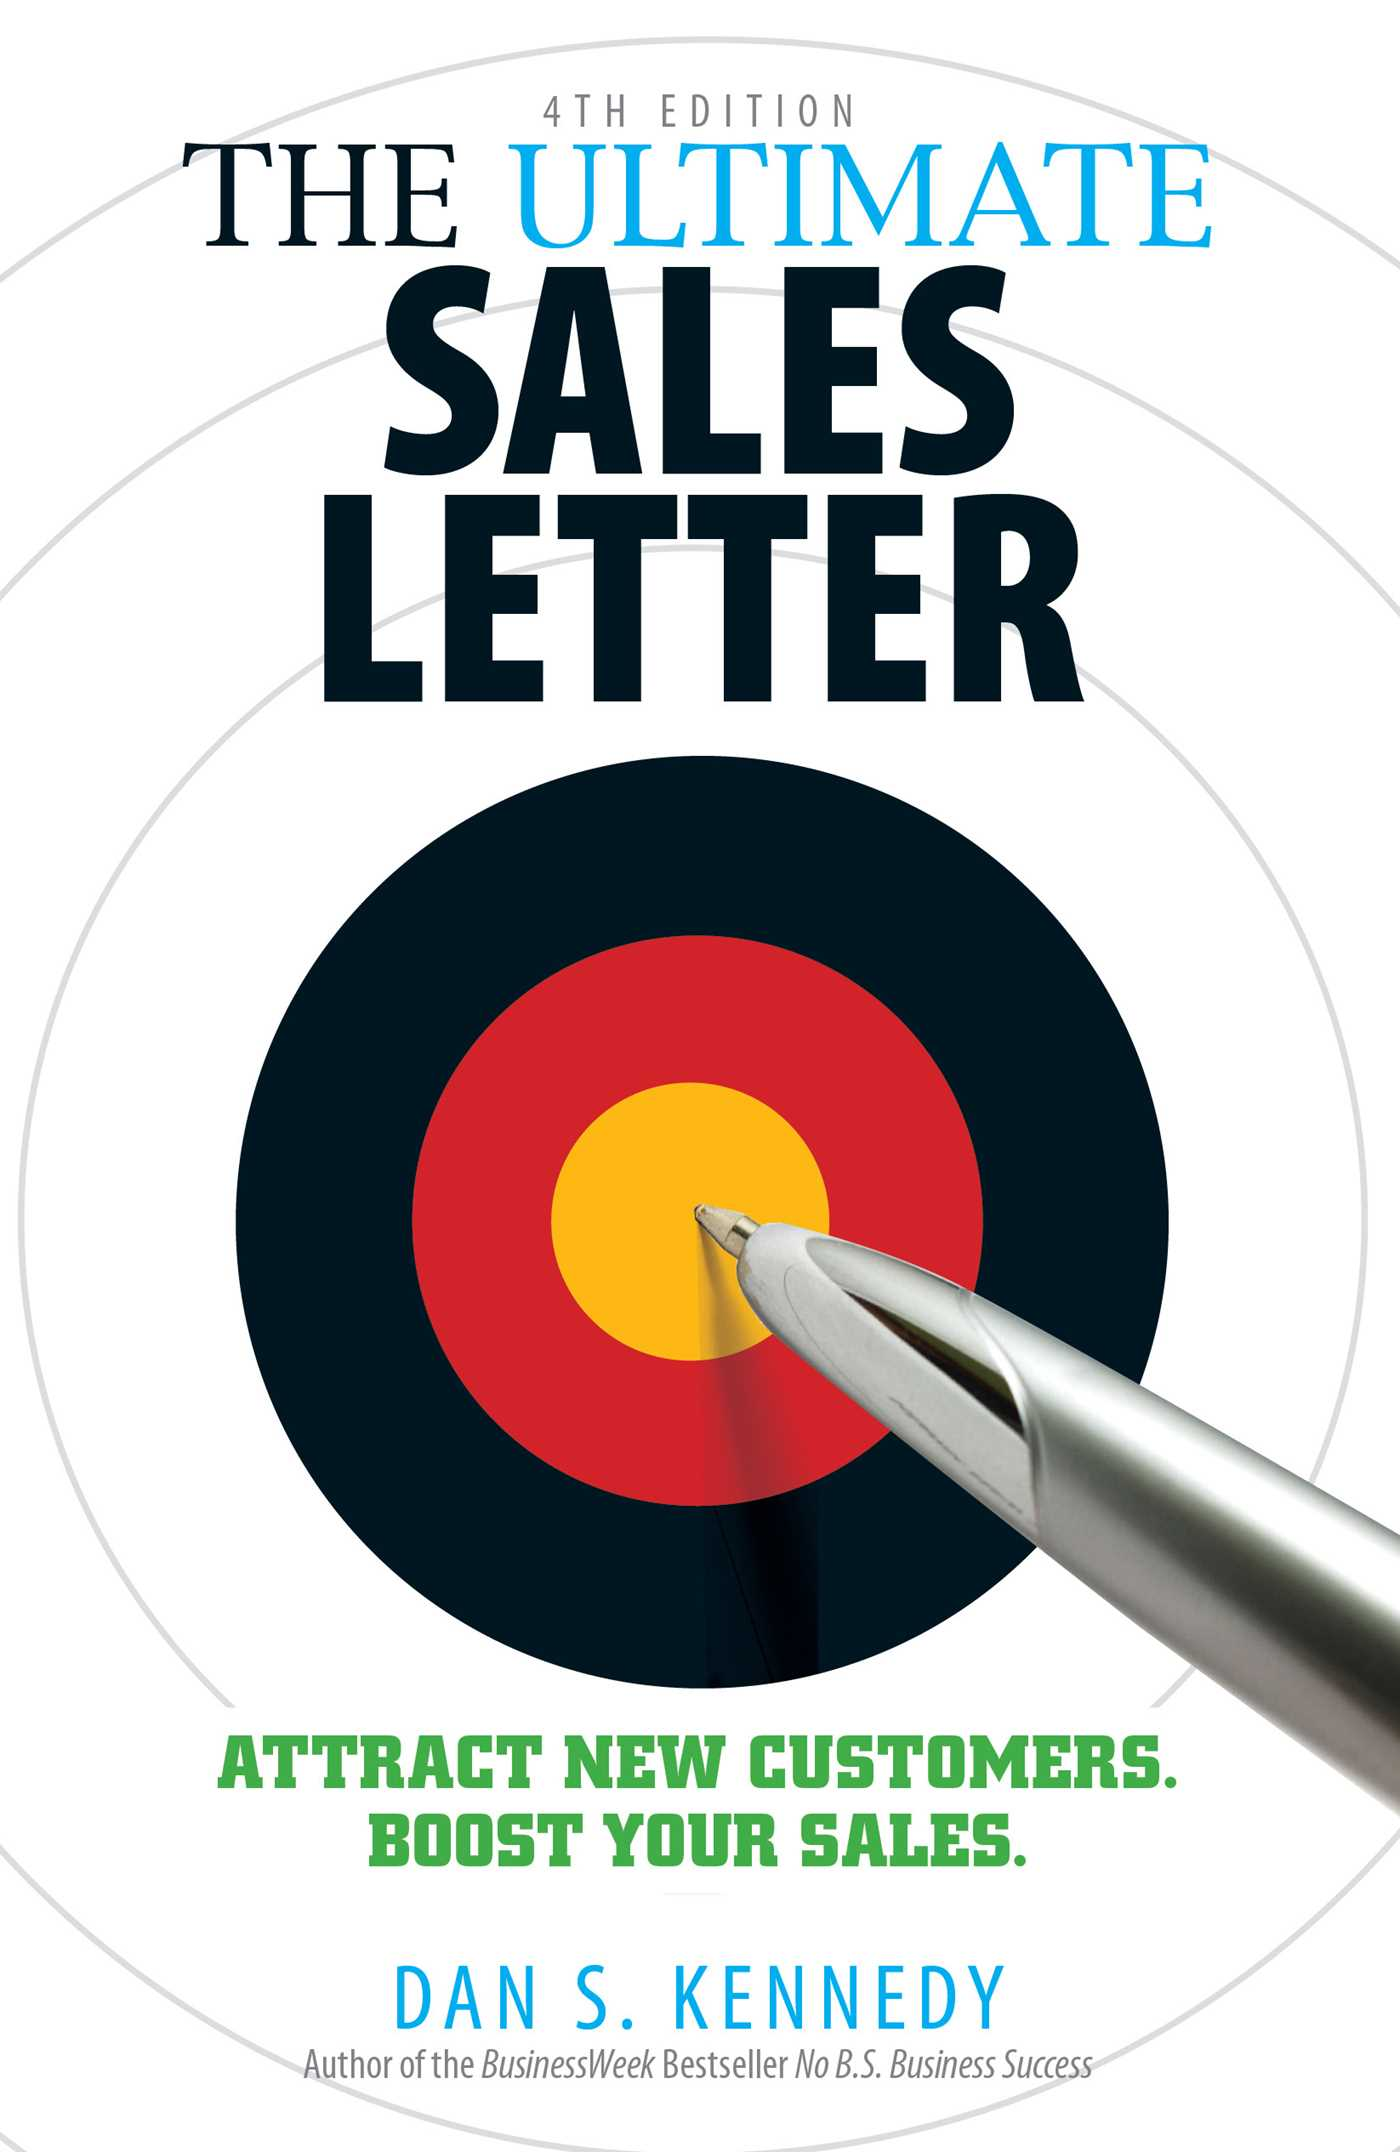 The ultimate sales letter 4th edition 9781440511905 hr